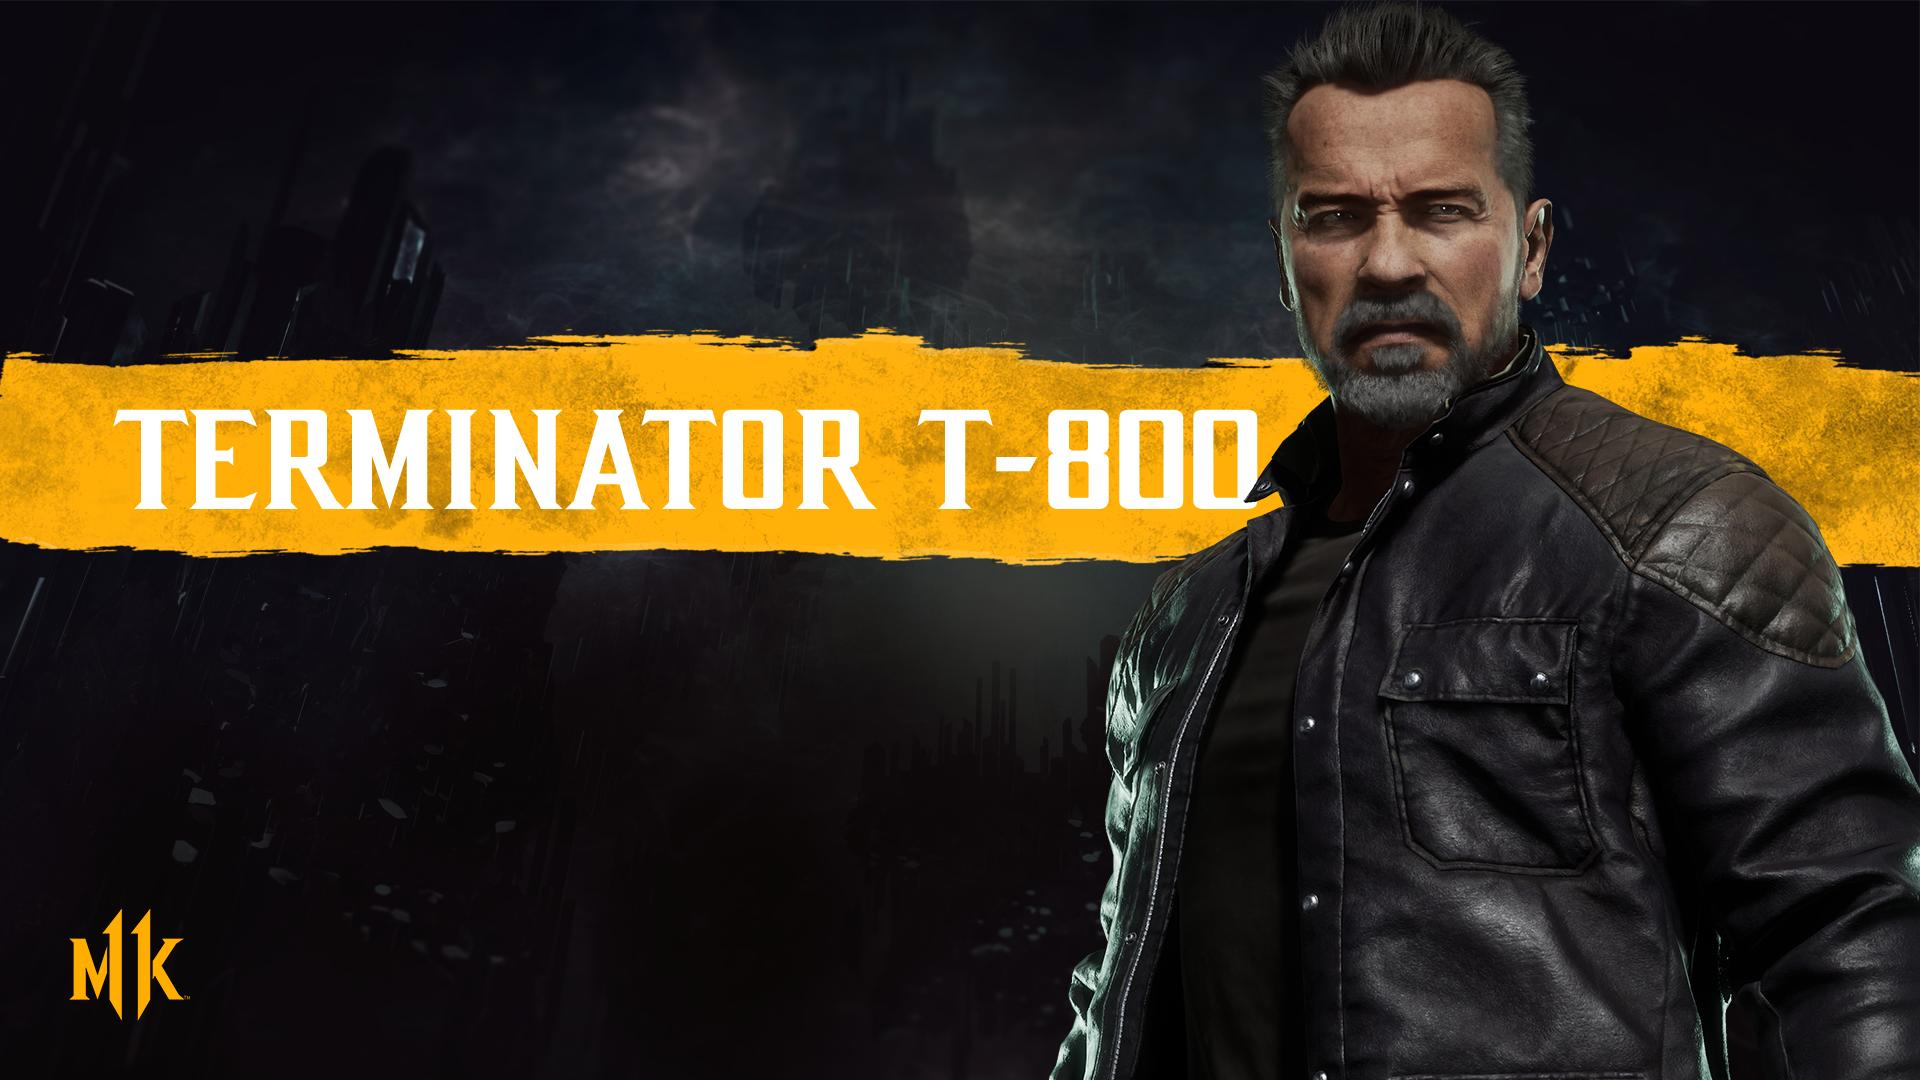 Mortal Kombat 11 background - Terminator T-800